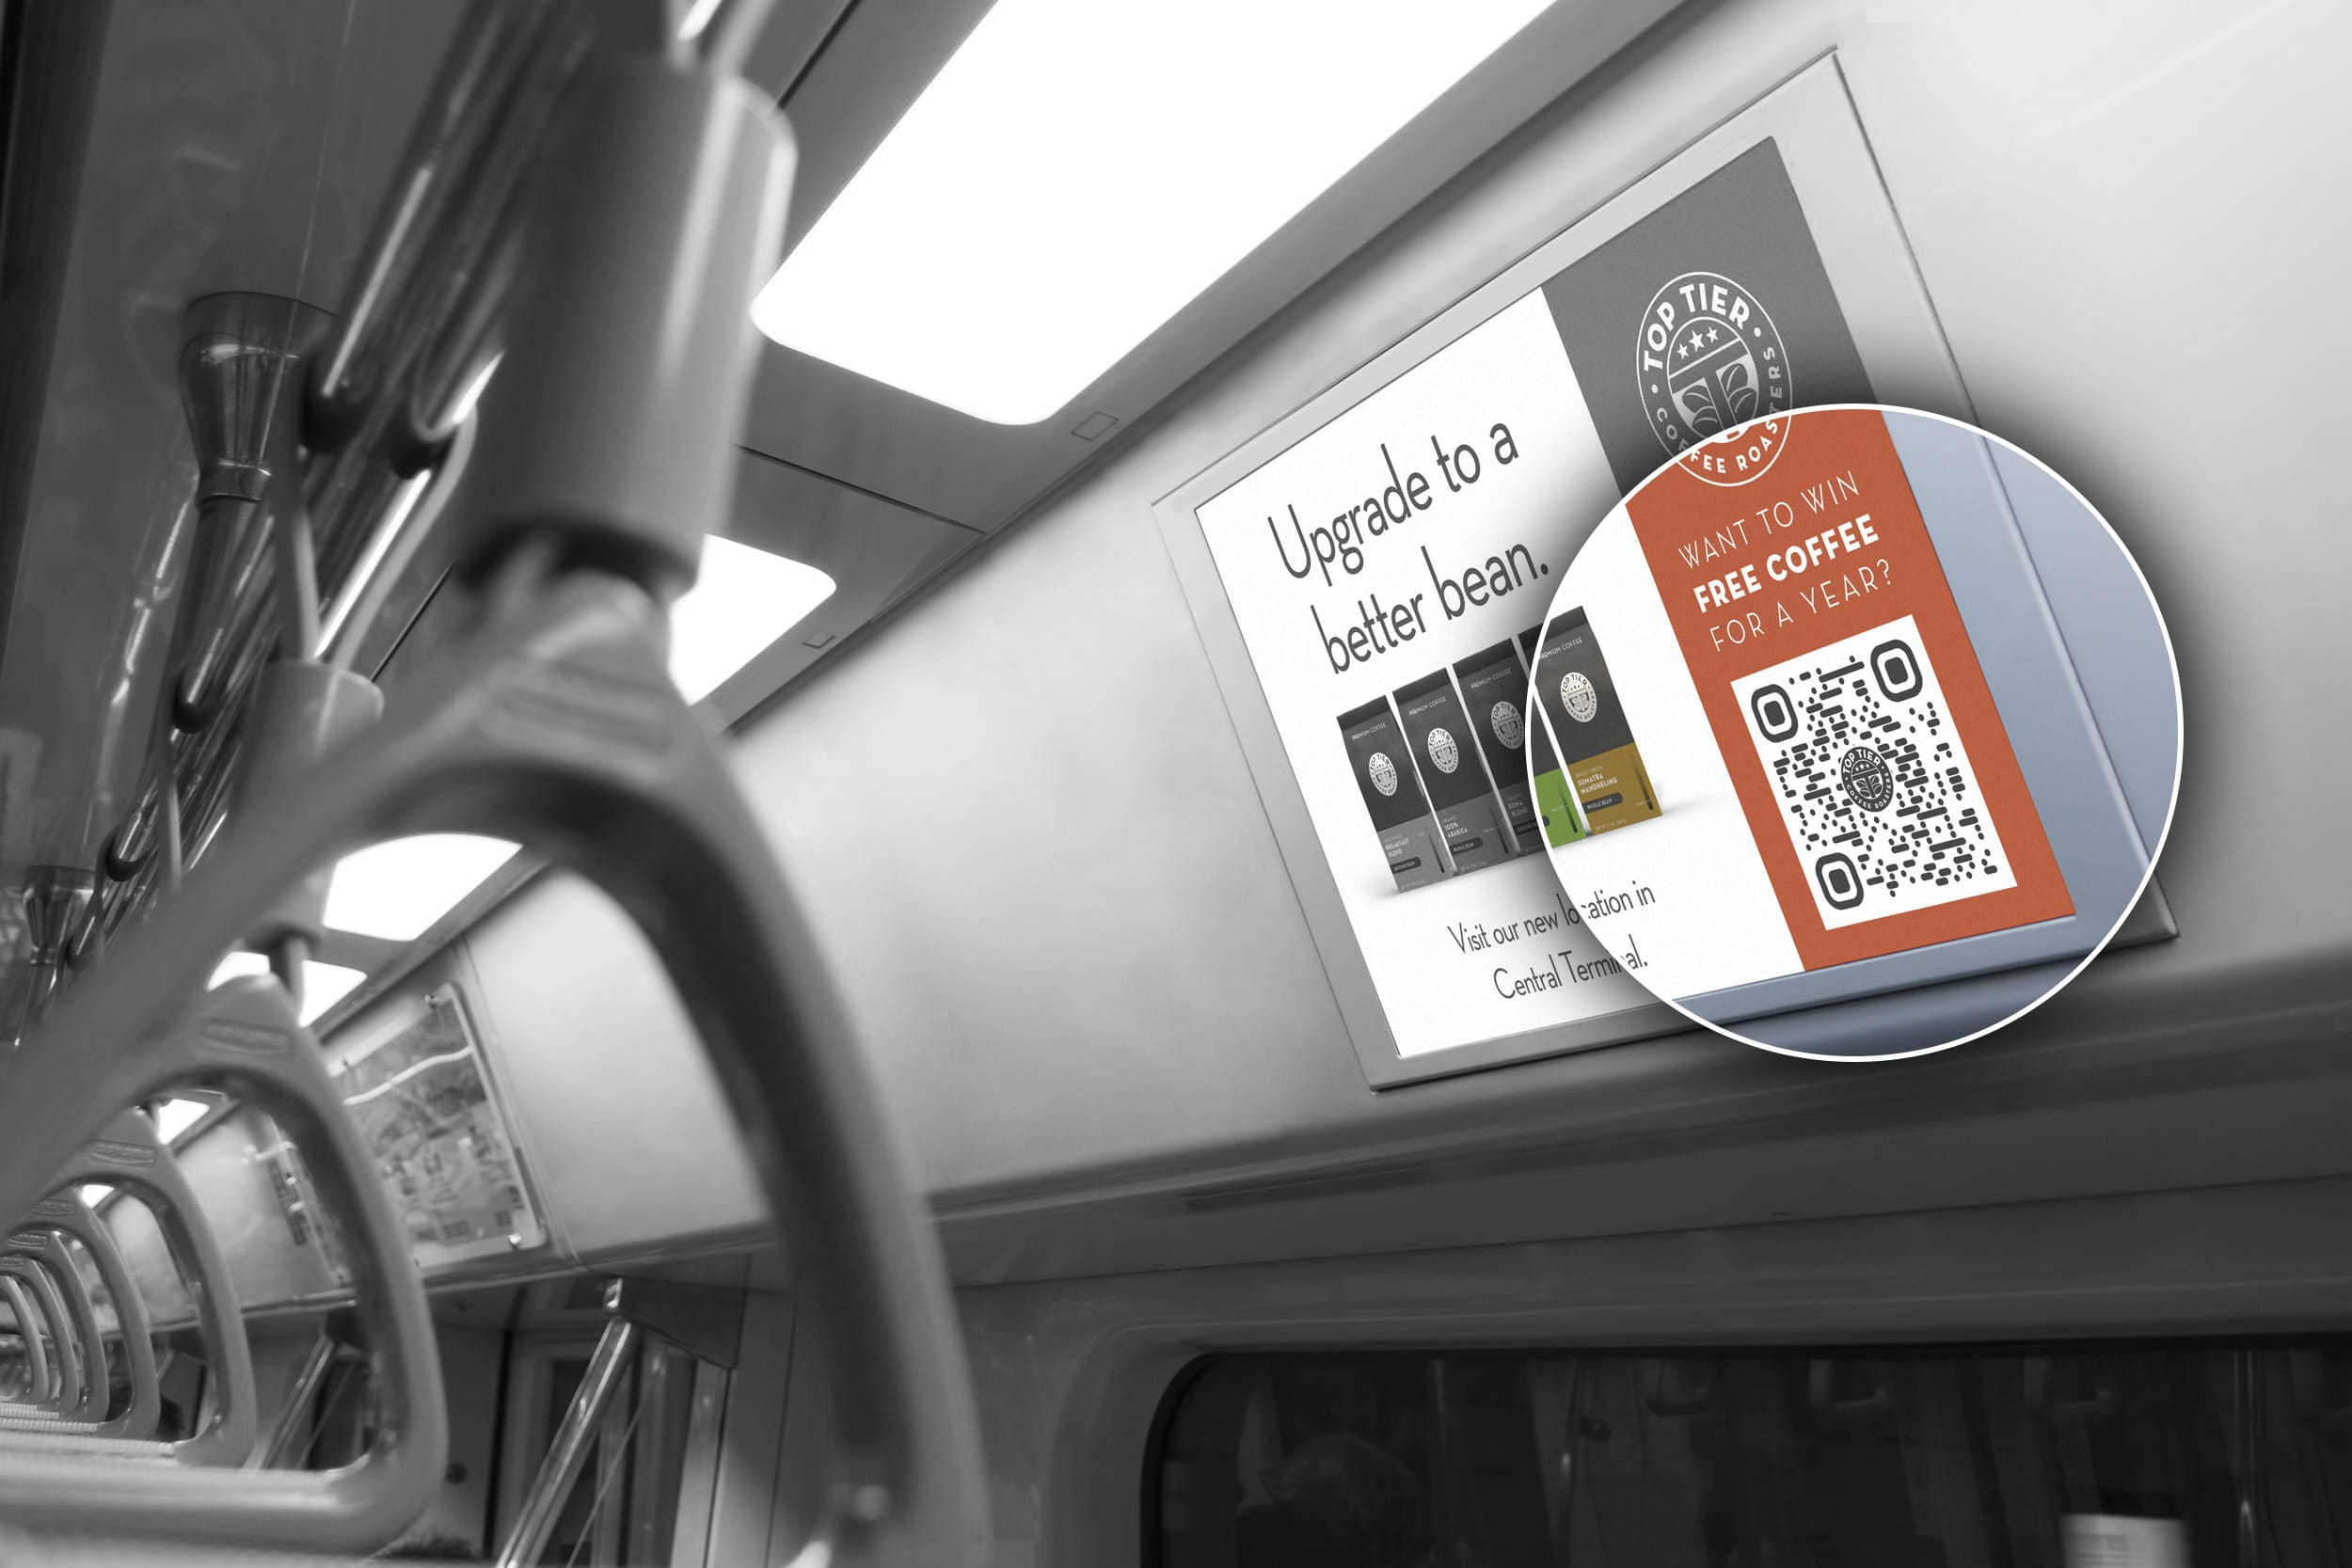 bus advertisement with qr code